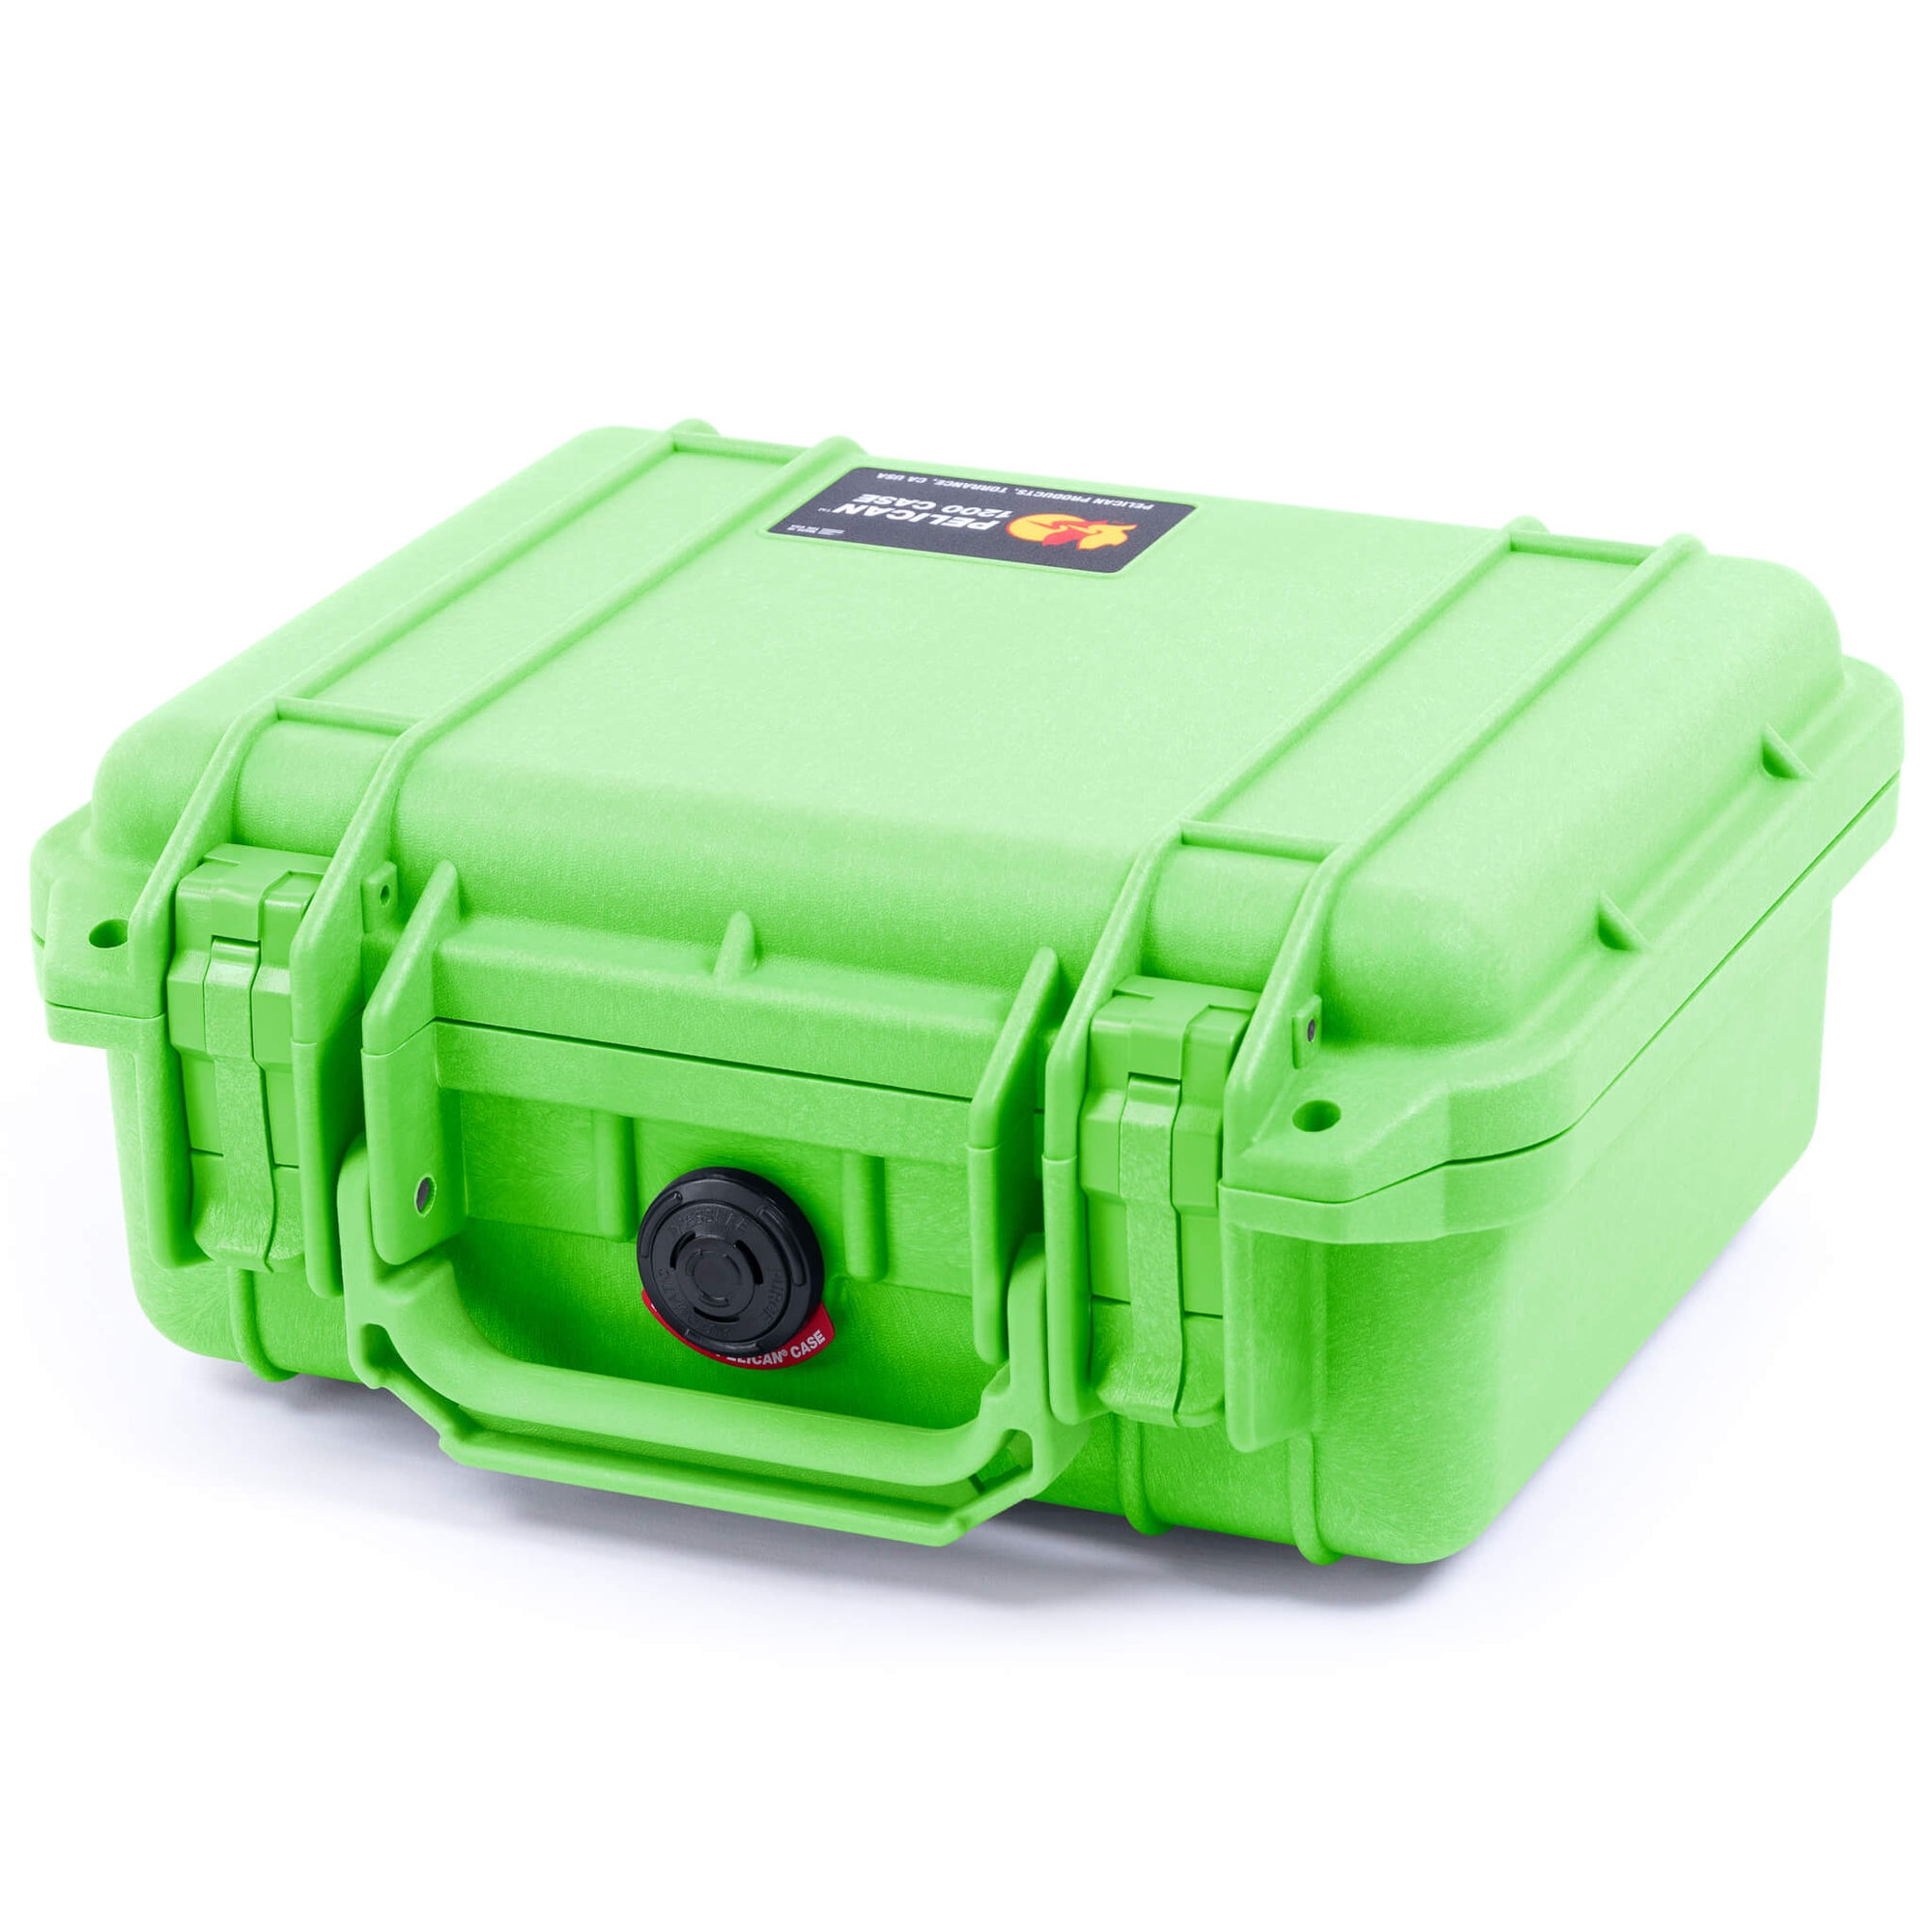 Pelican 1200 Case, Lime Green - Pelican Color Case